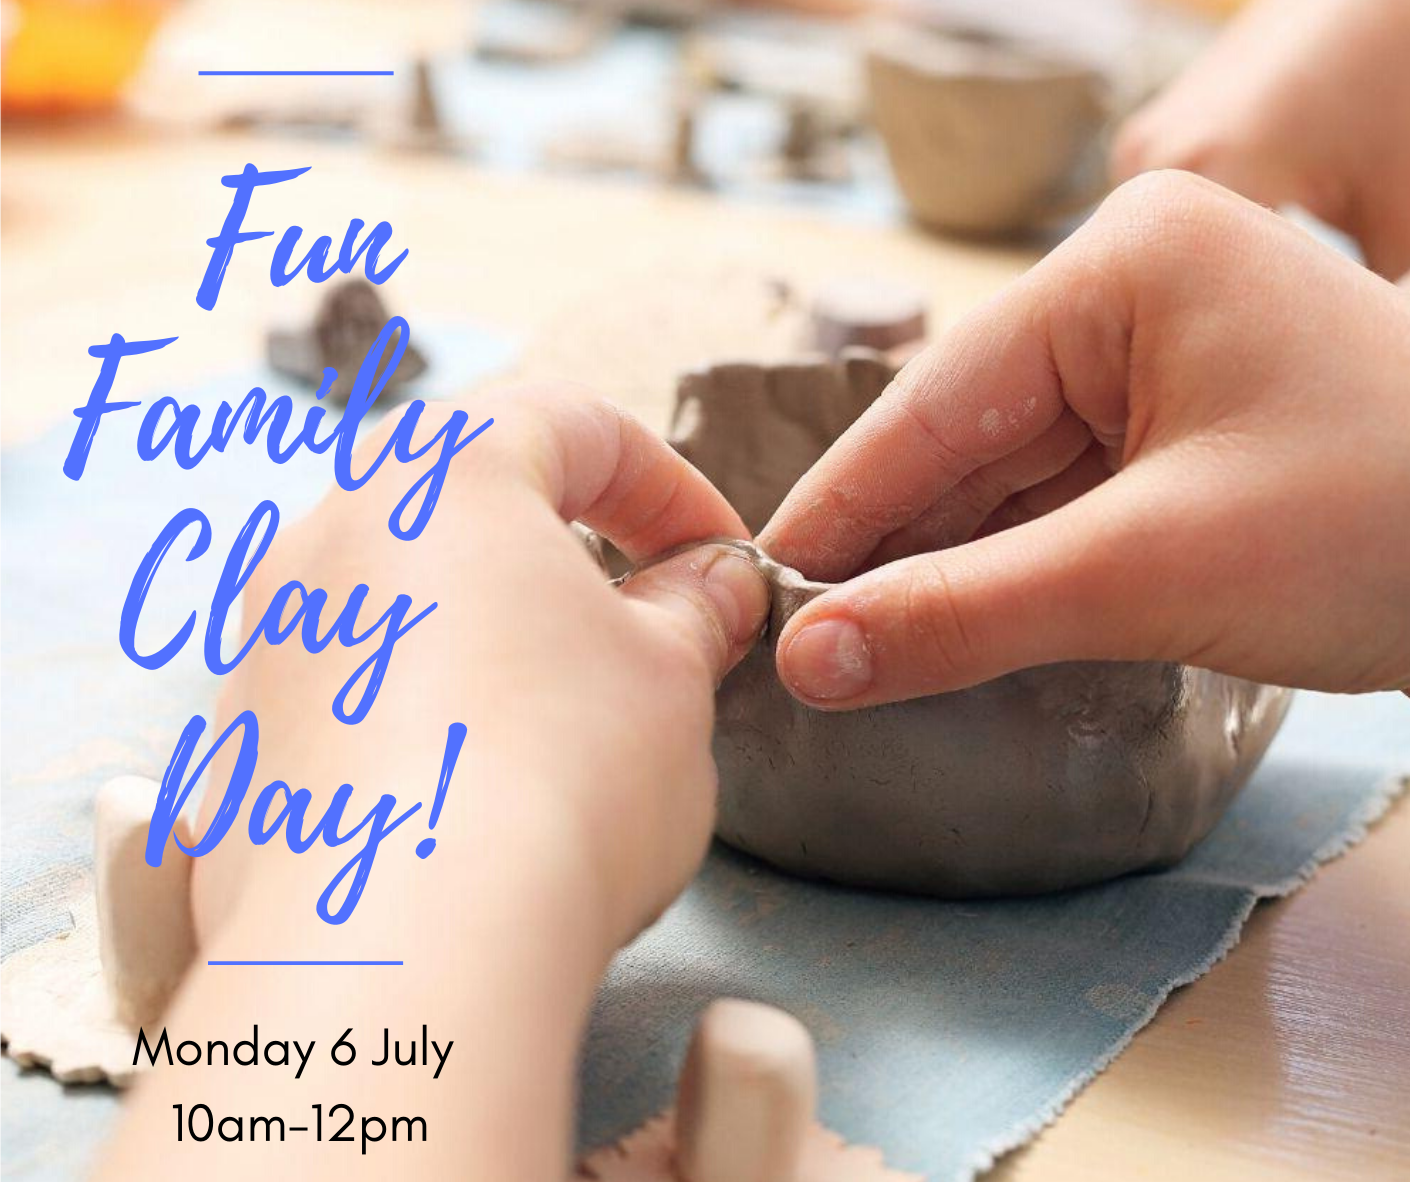 Fun family clay sculpture workshop! - Monday 6 July 10am - 12.00pm